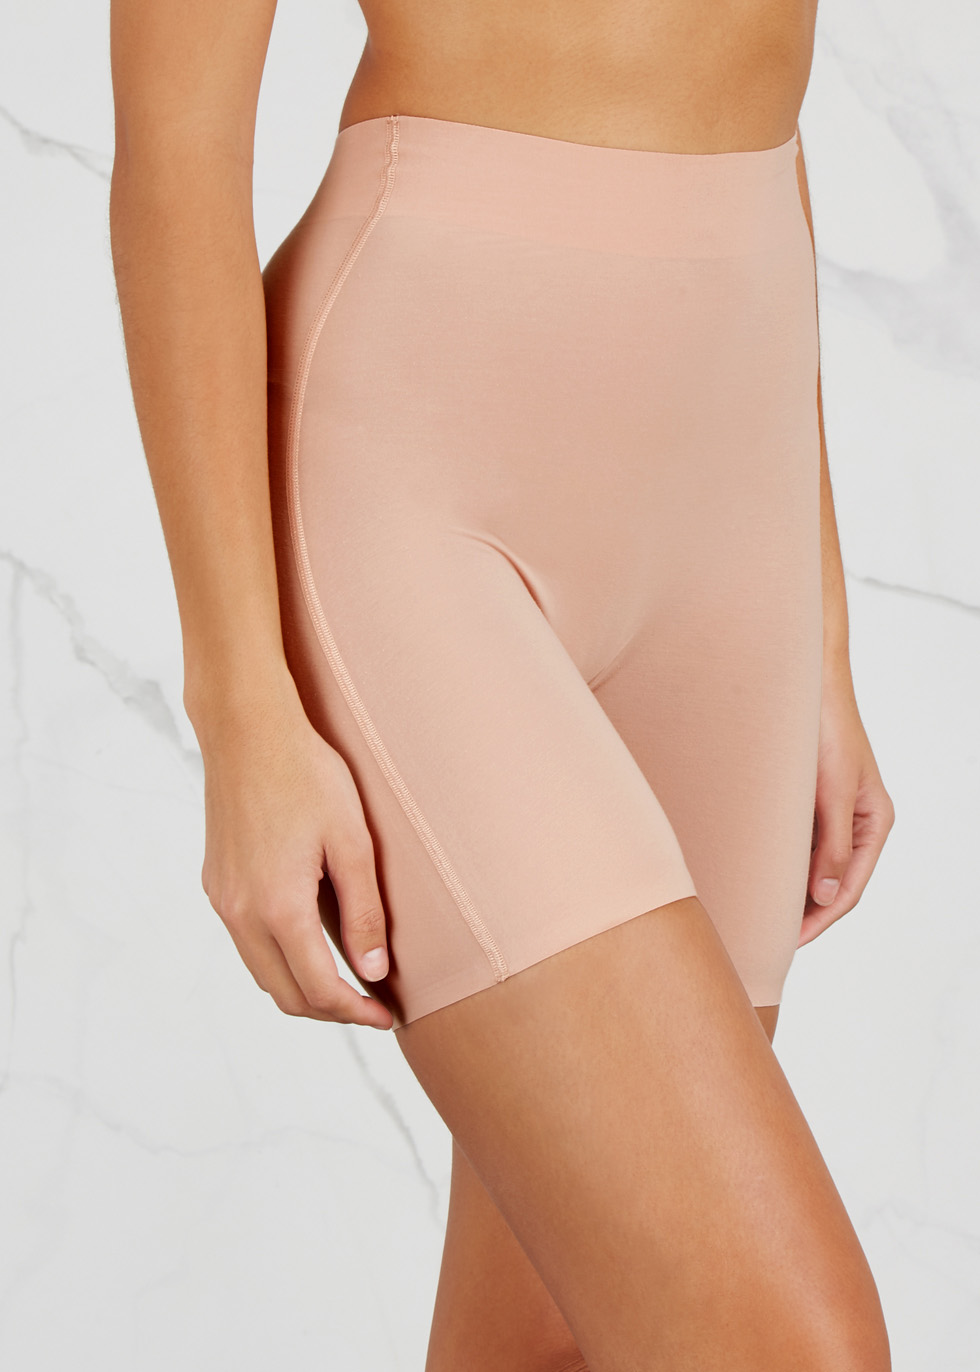 Blush stretch cotton control shorts - Wolford